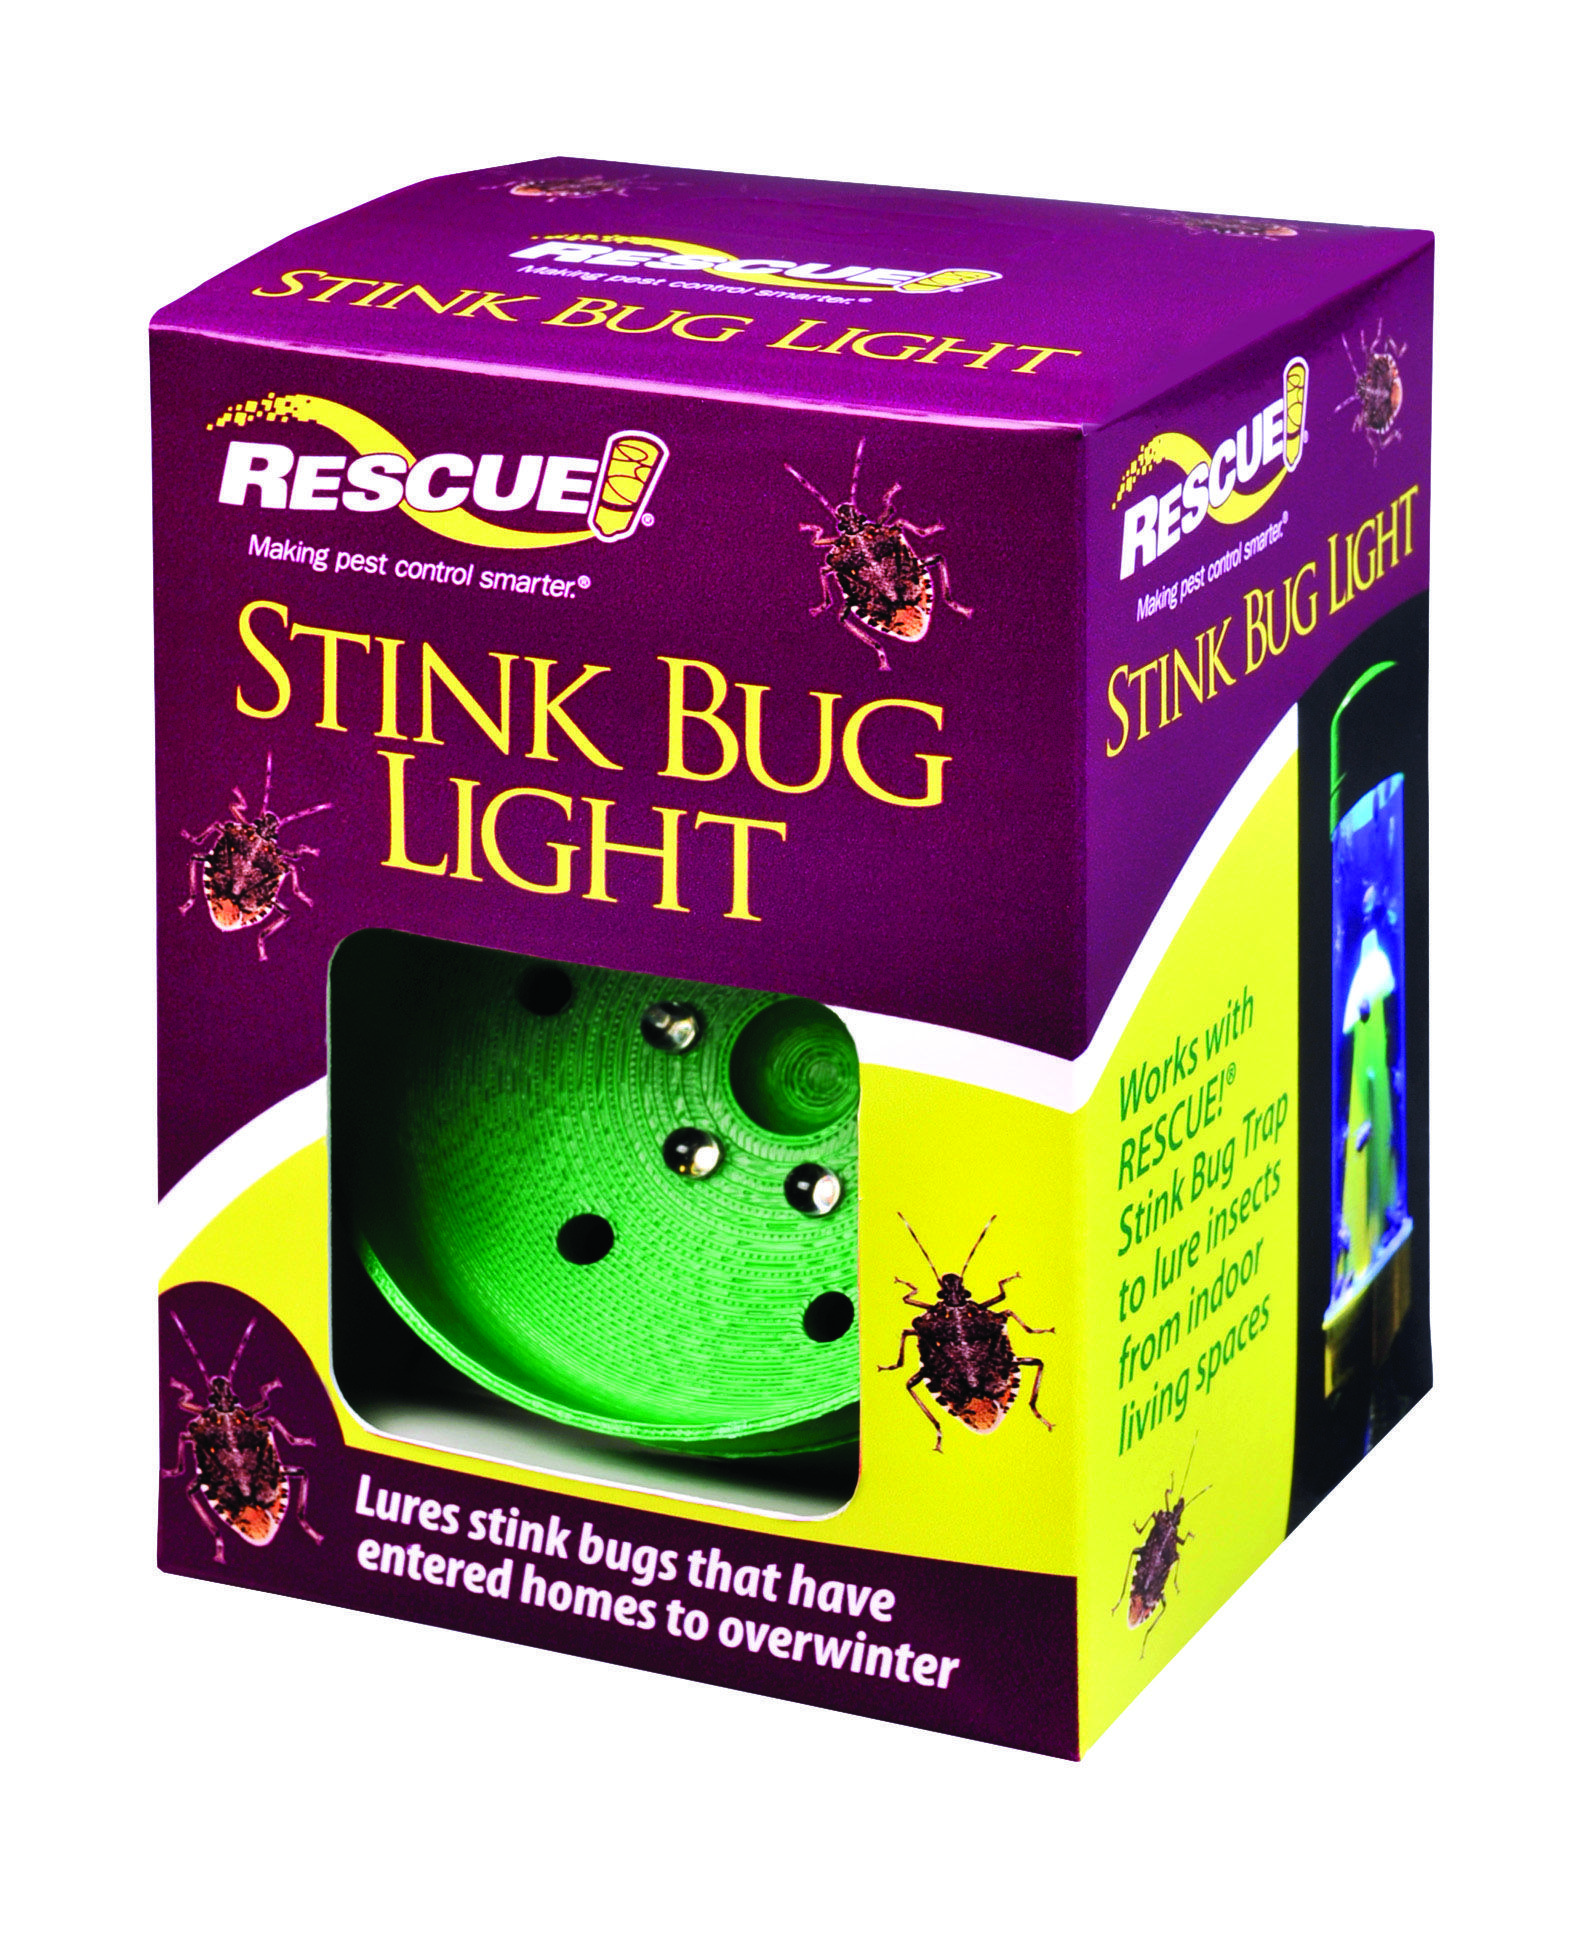 RESCUE STINK BUG TRAP LIGHT Stink bug trap, Bug trap